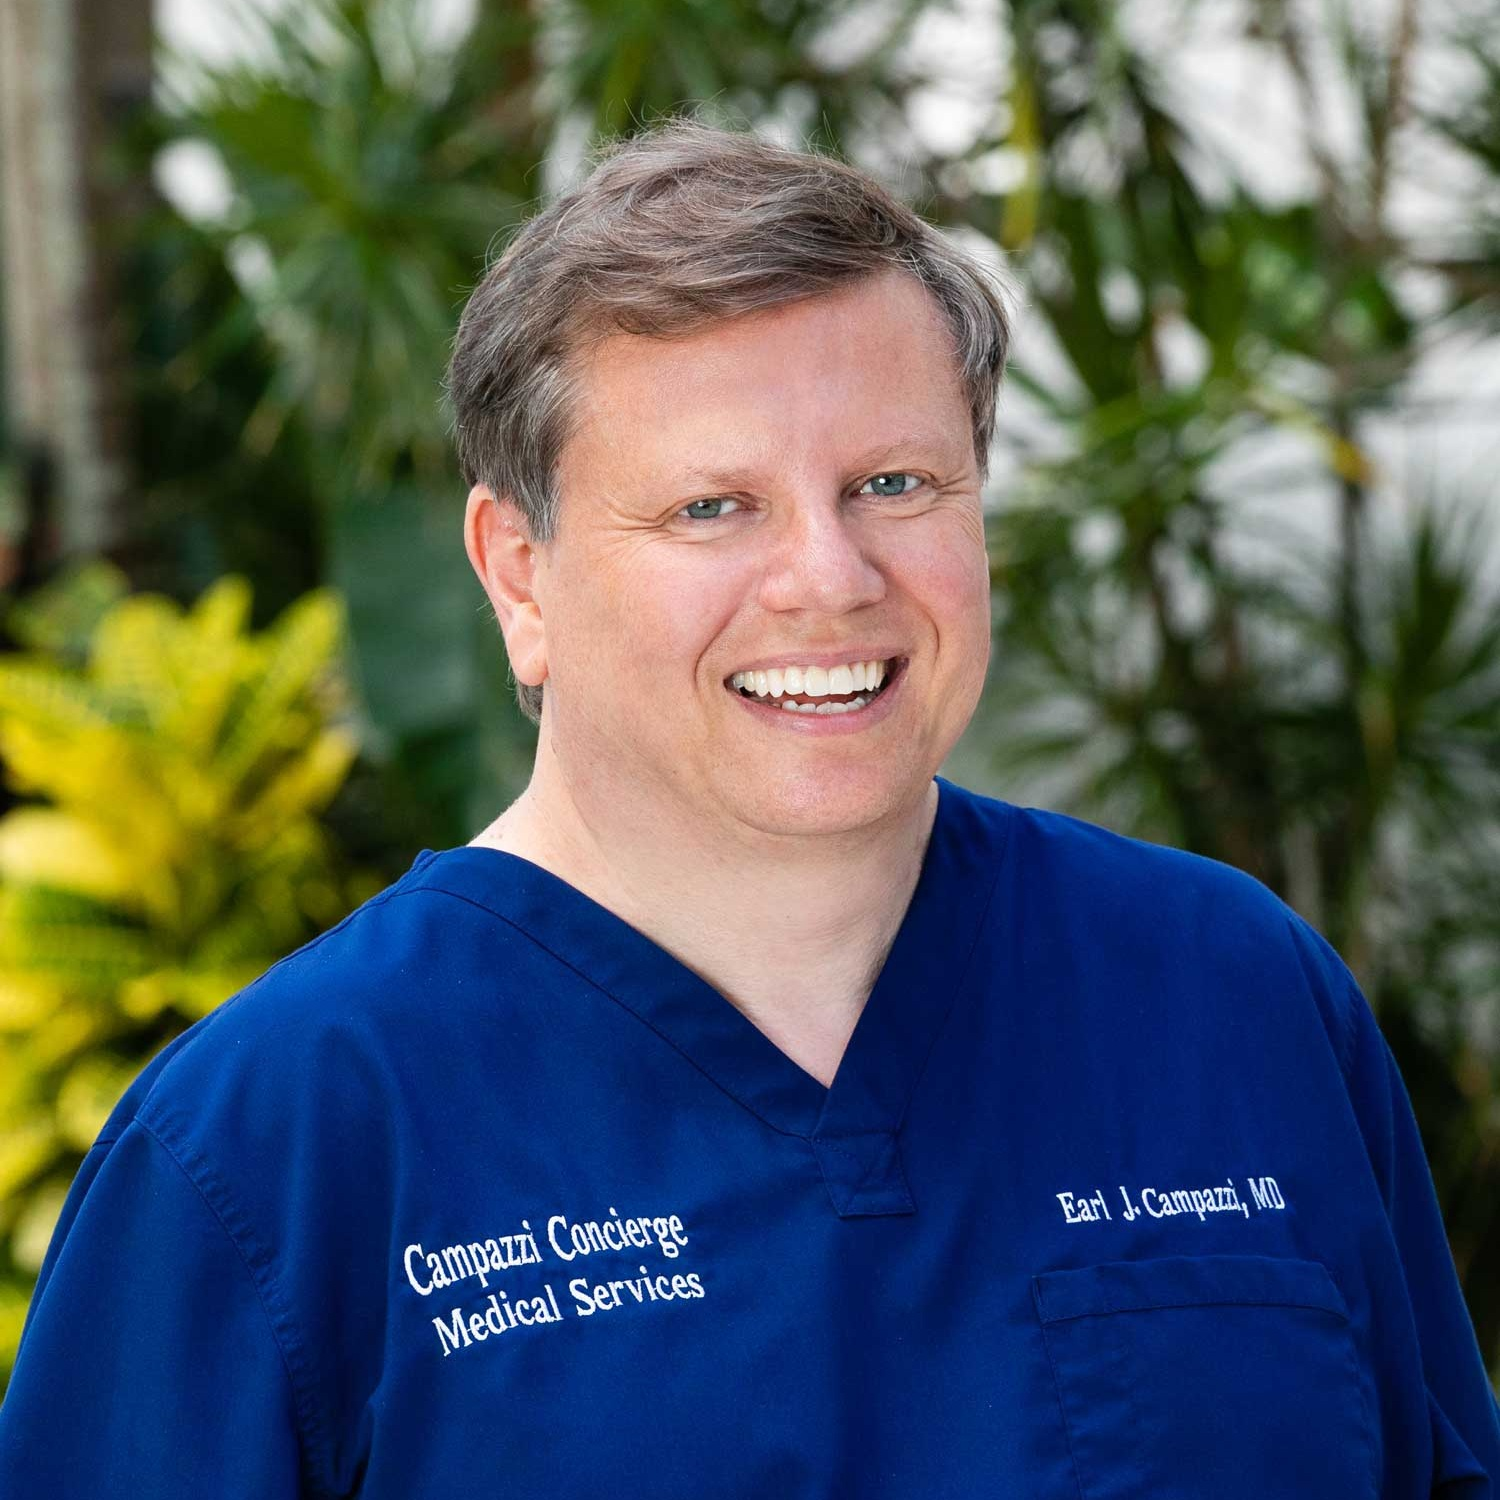 Dr. Campazzi is a concierge doctor in Palm Beach, Florida.